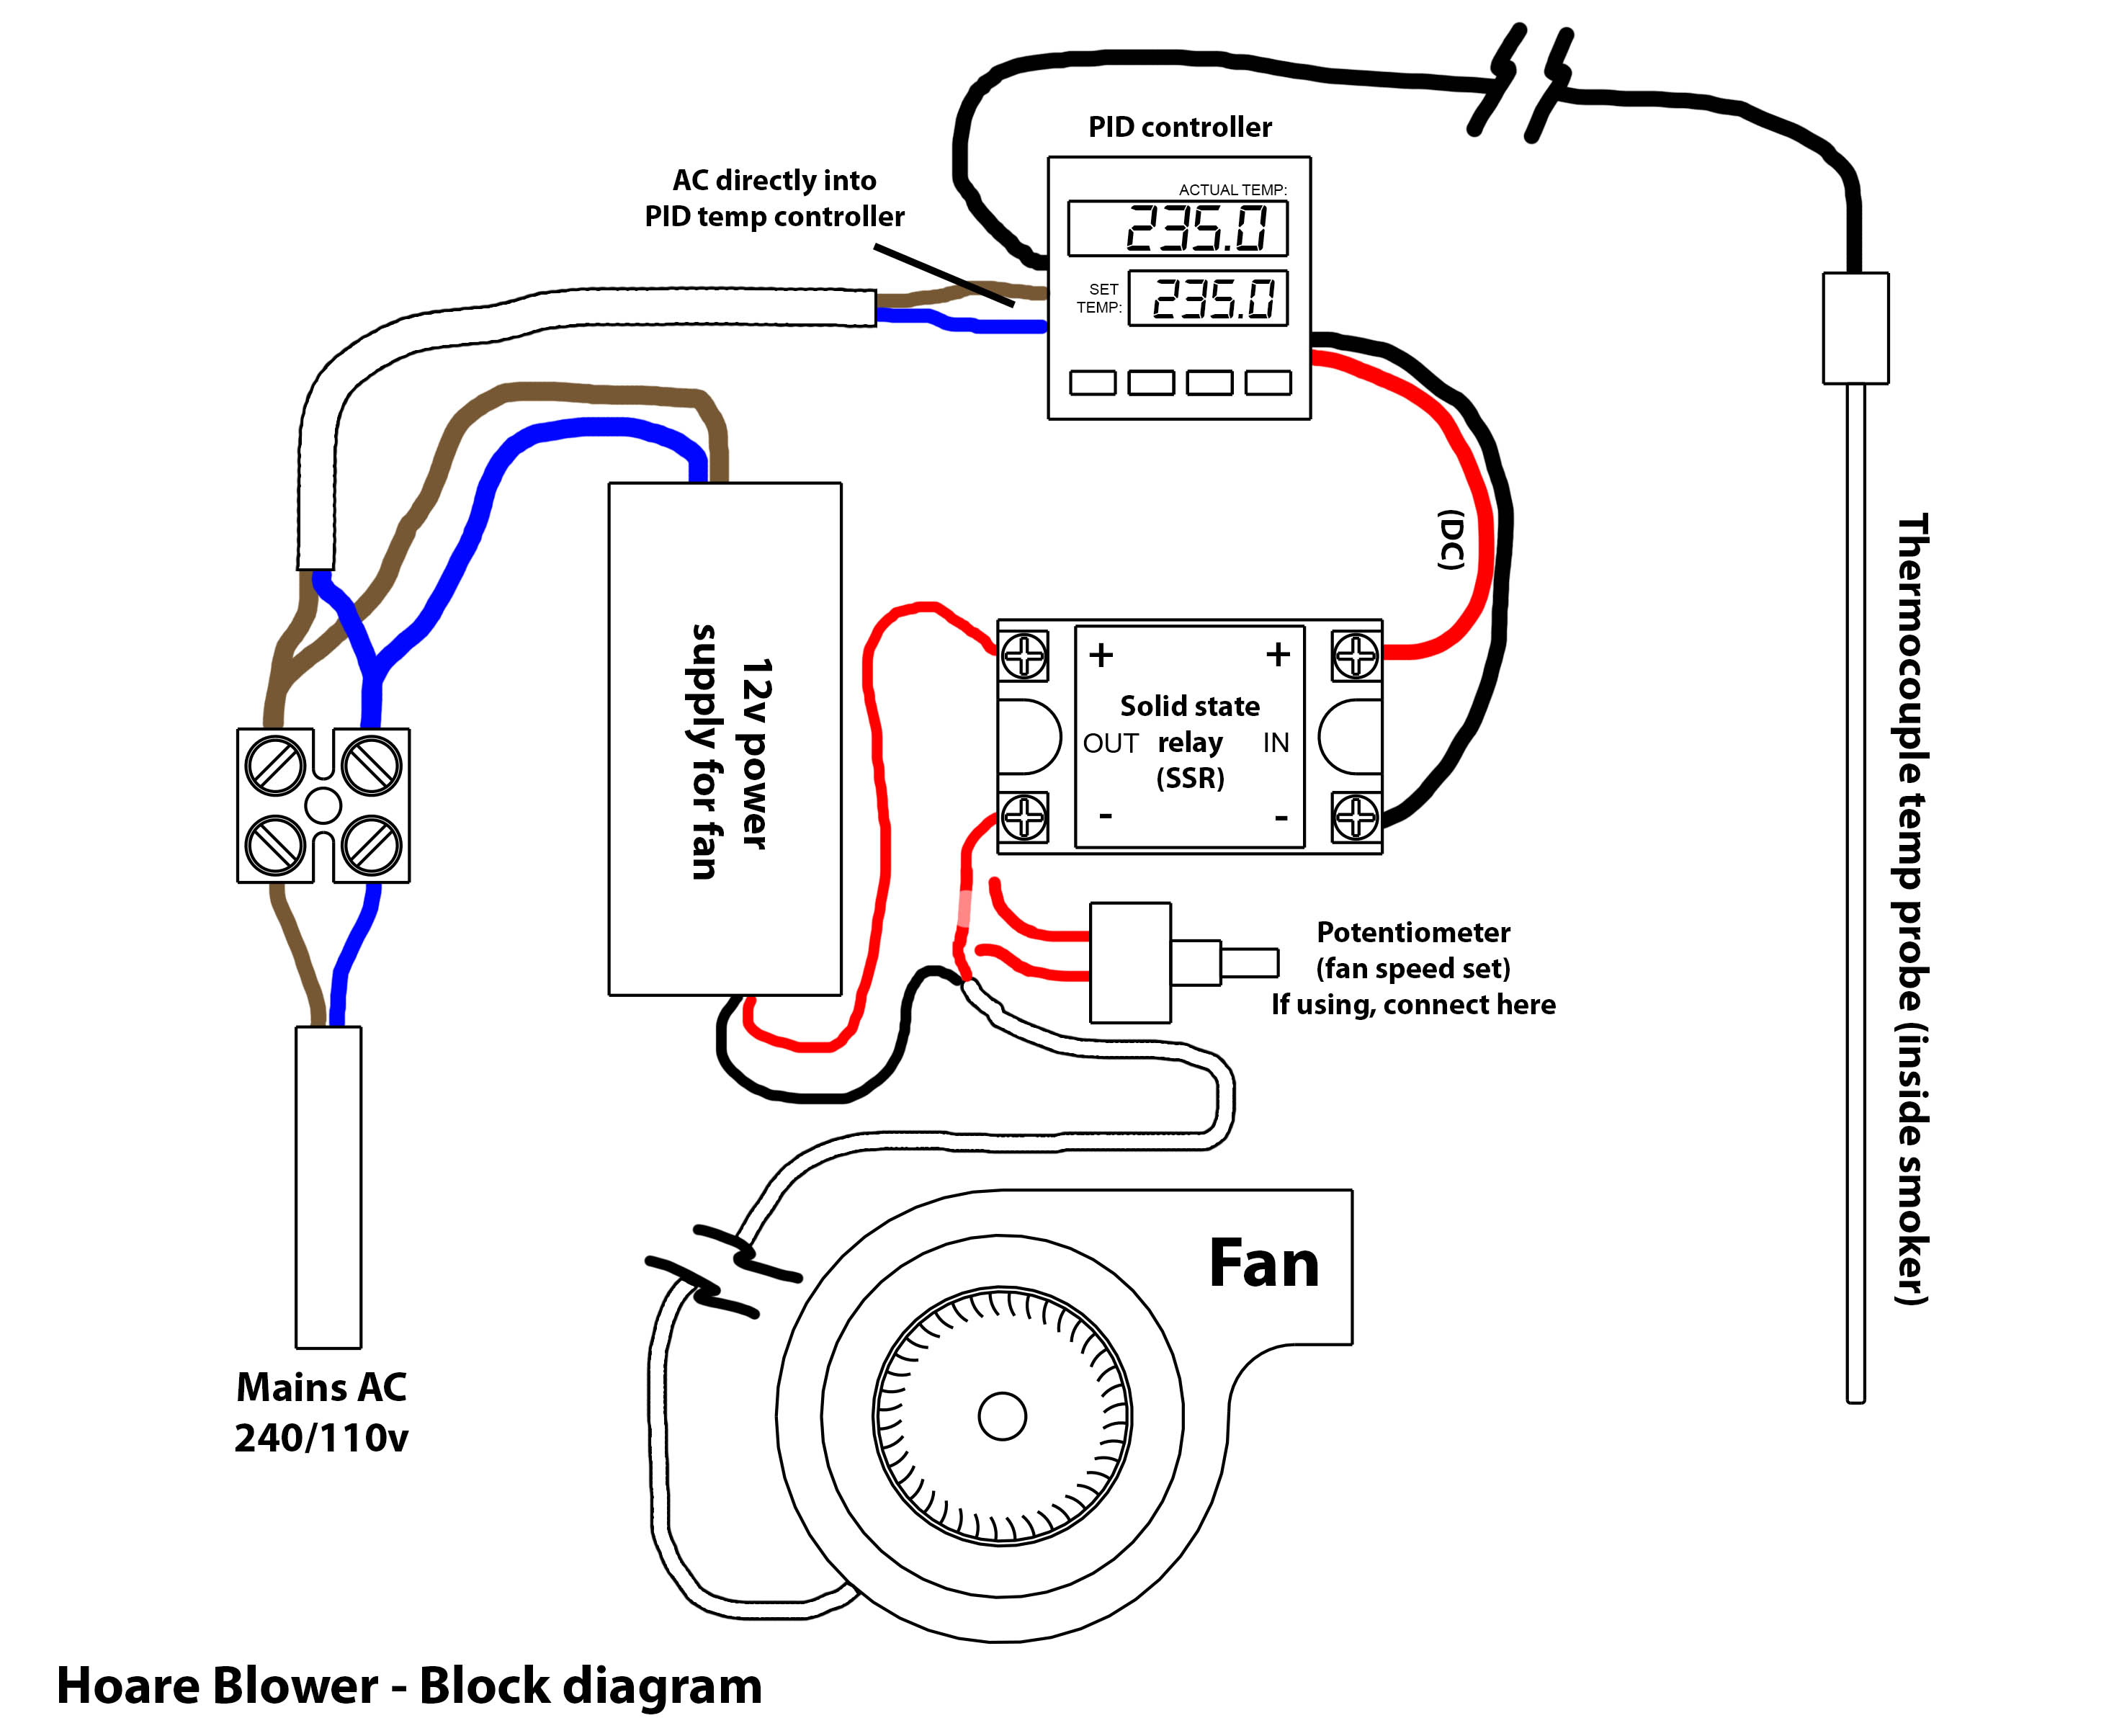 Wiring Manual PDF: 12 Volt Potentiometer Wiring Diagram